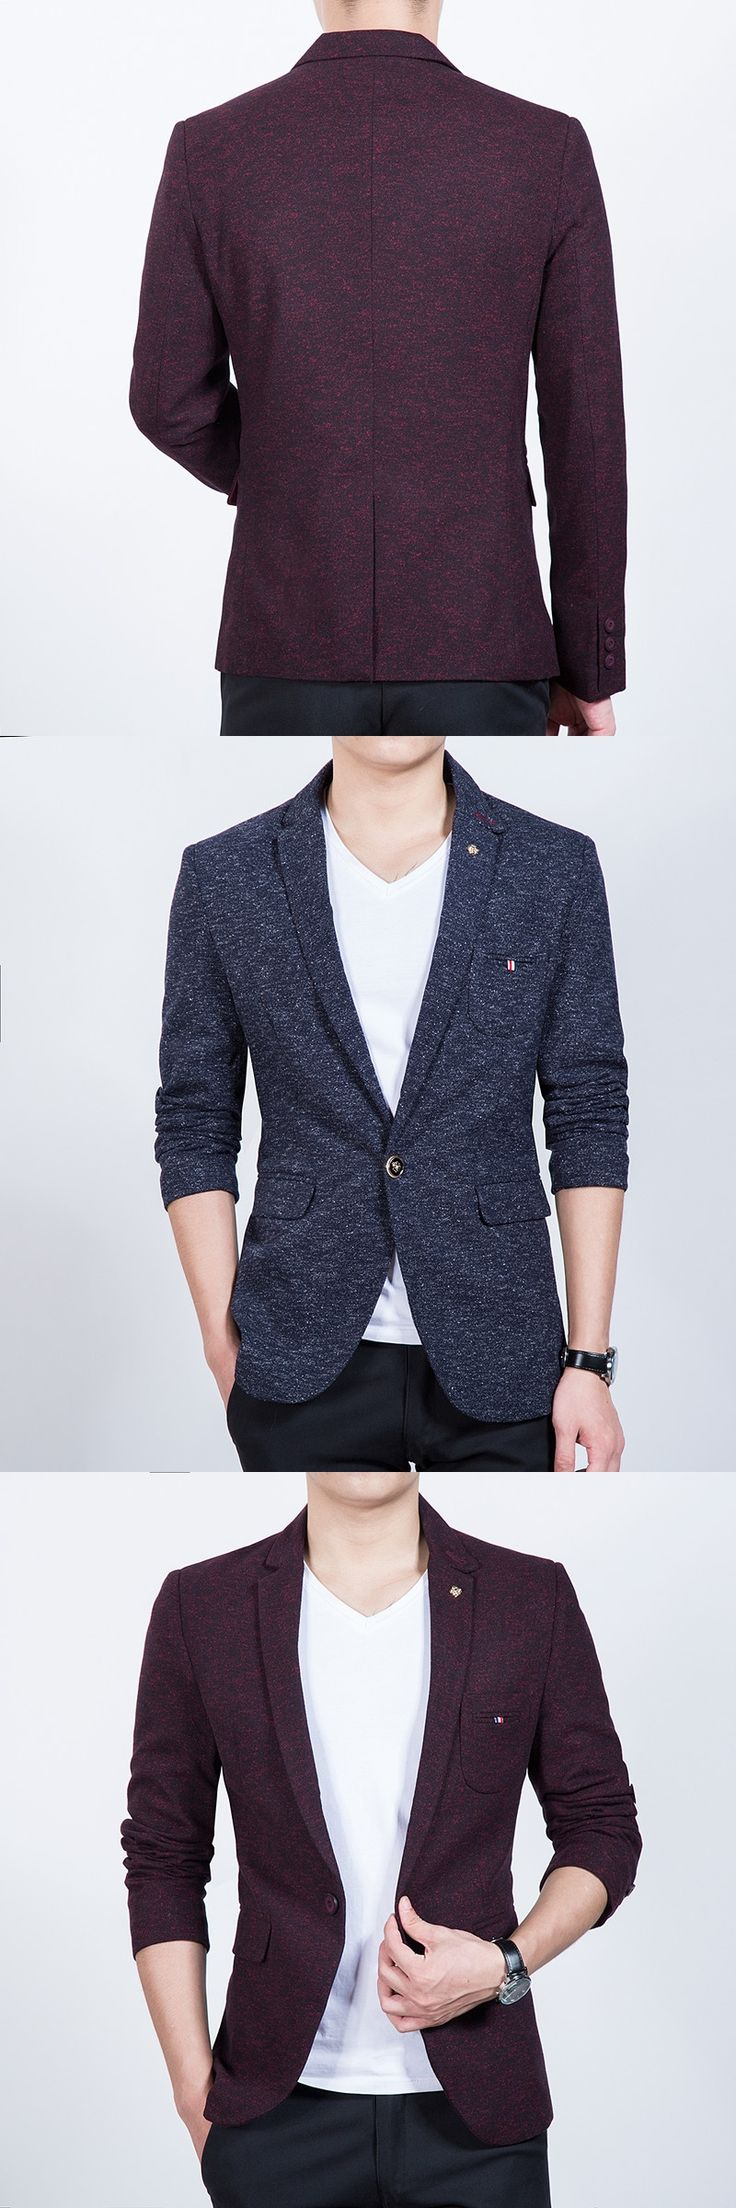 Mens casual blazer Slim fit red grey autumn winter one single breasted button Korean fashion drop ship new 2017 big size 4XL